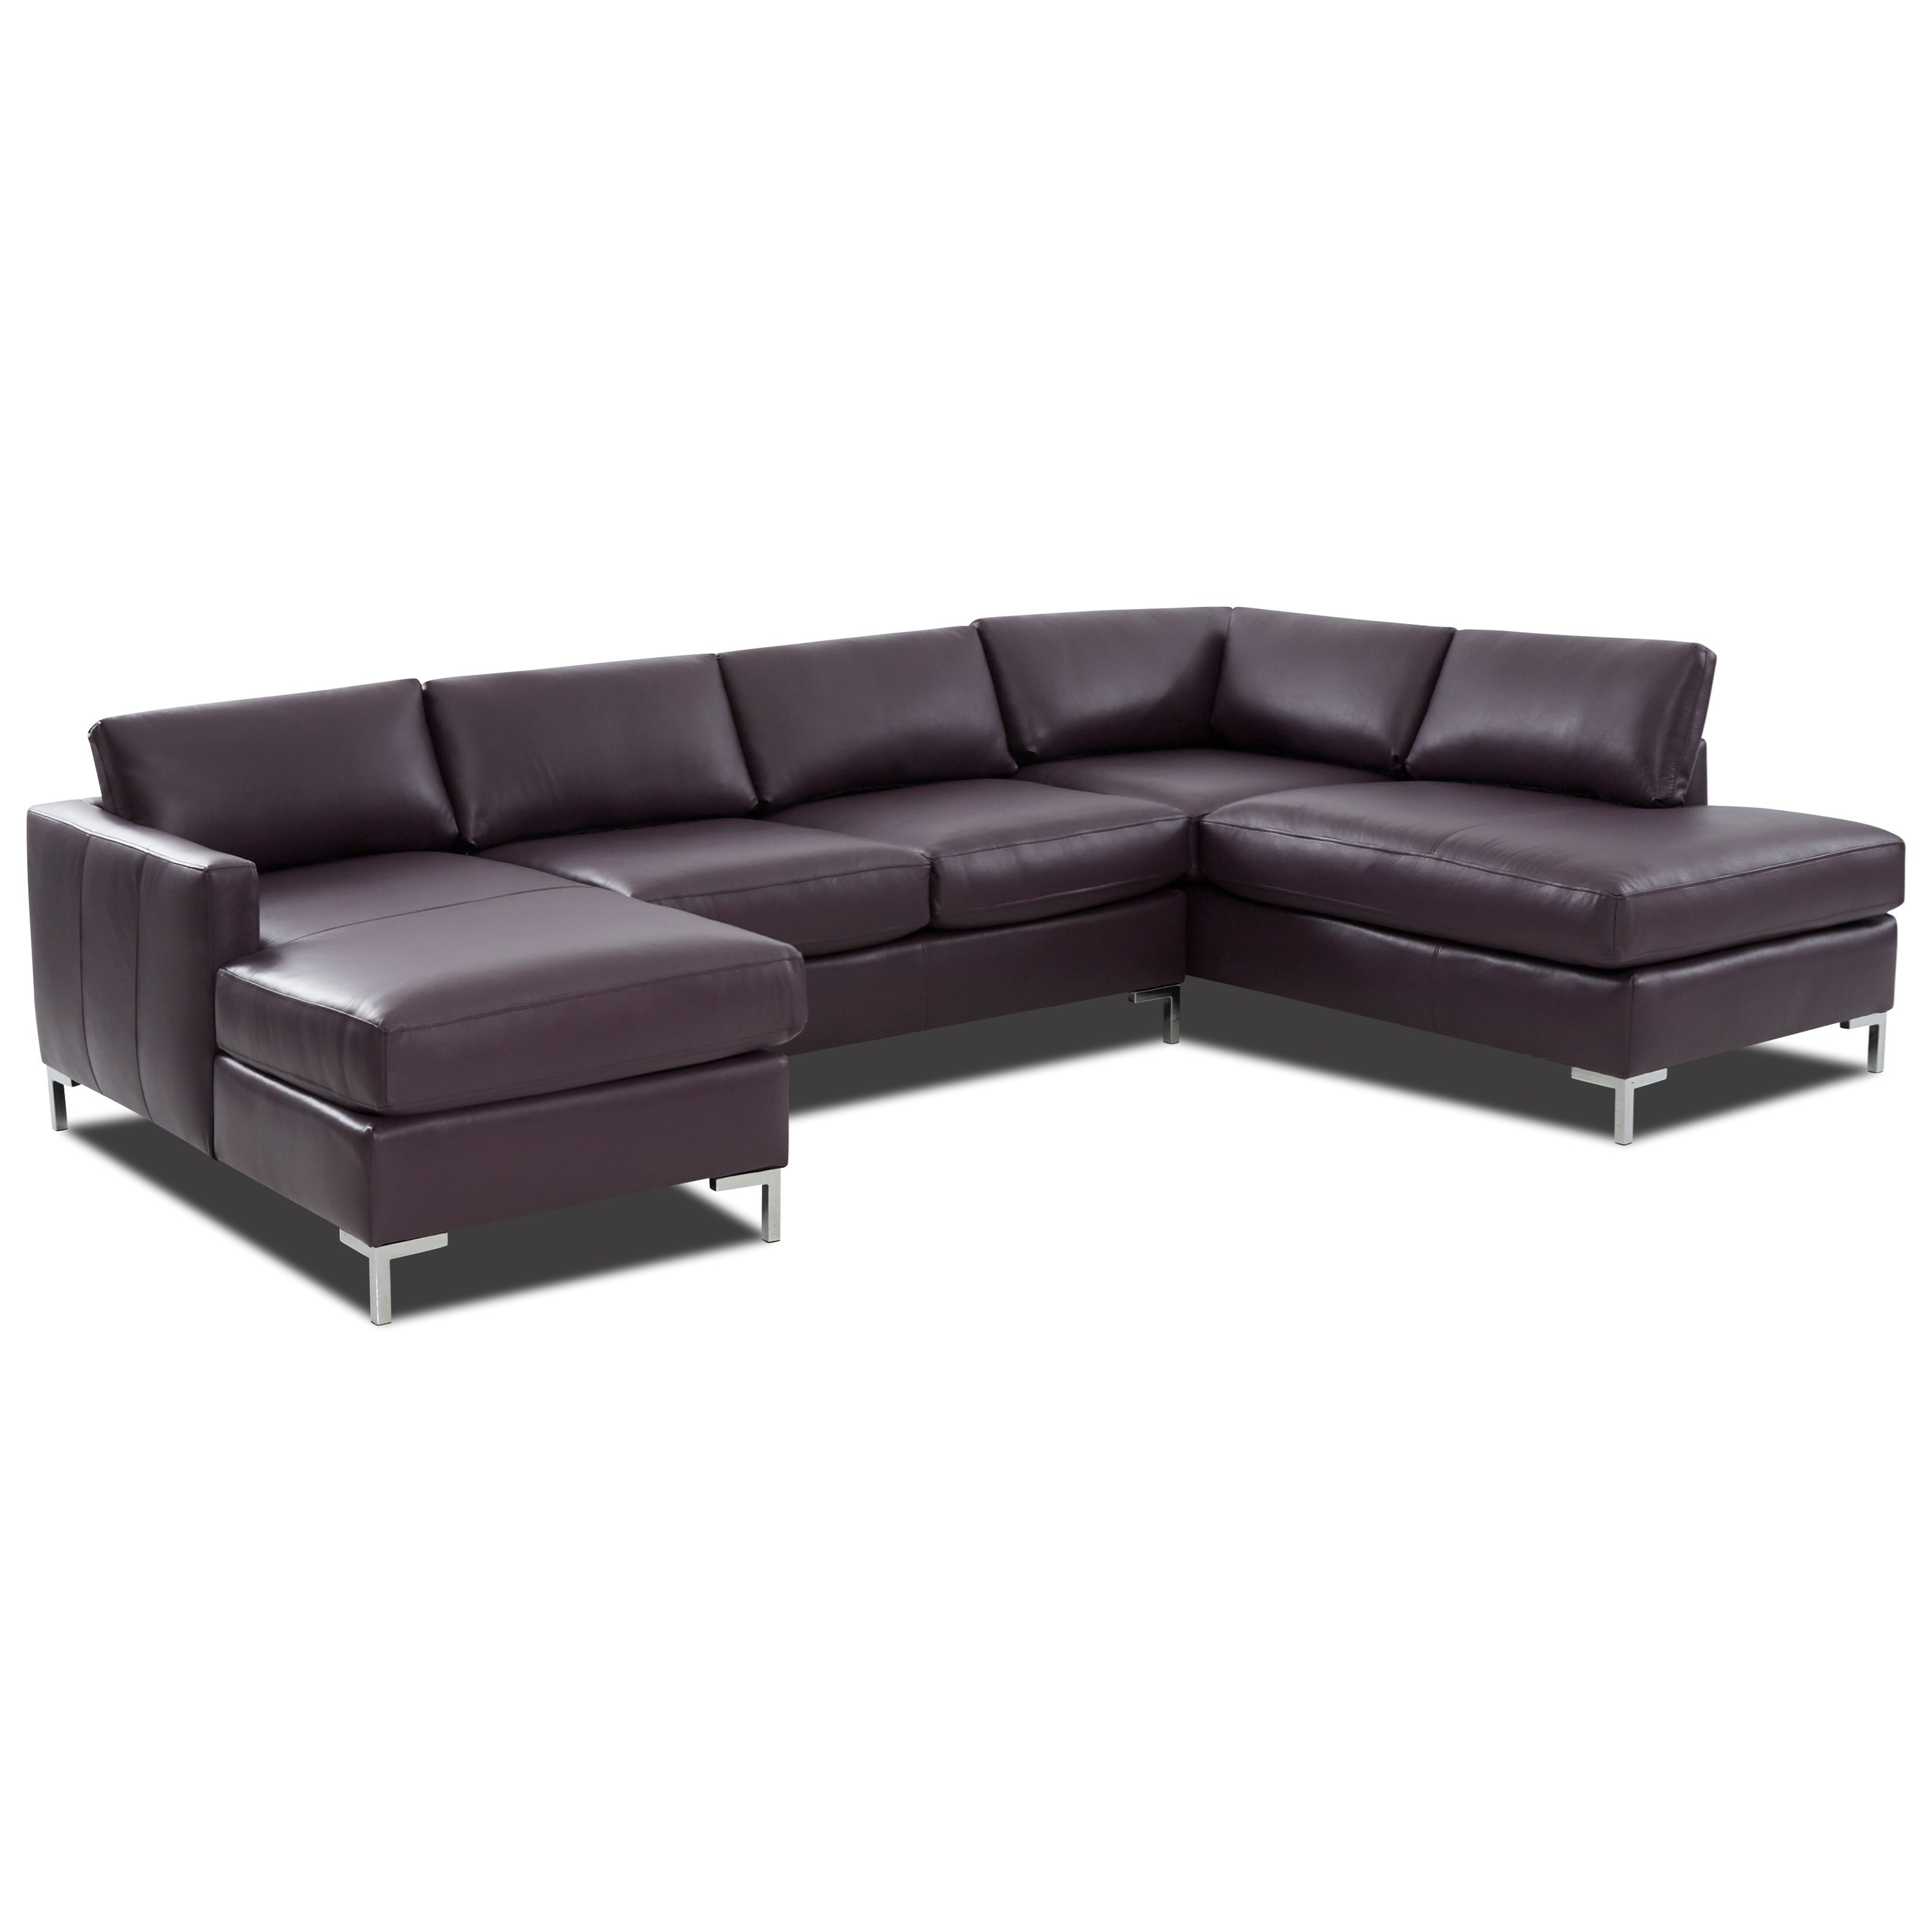 4-Seat Sectional Sofa w/ RAF Sofa Chaise